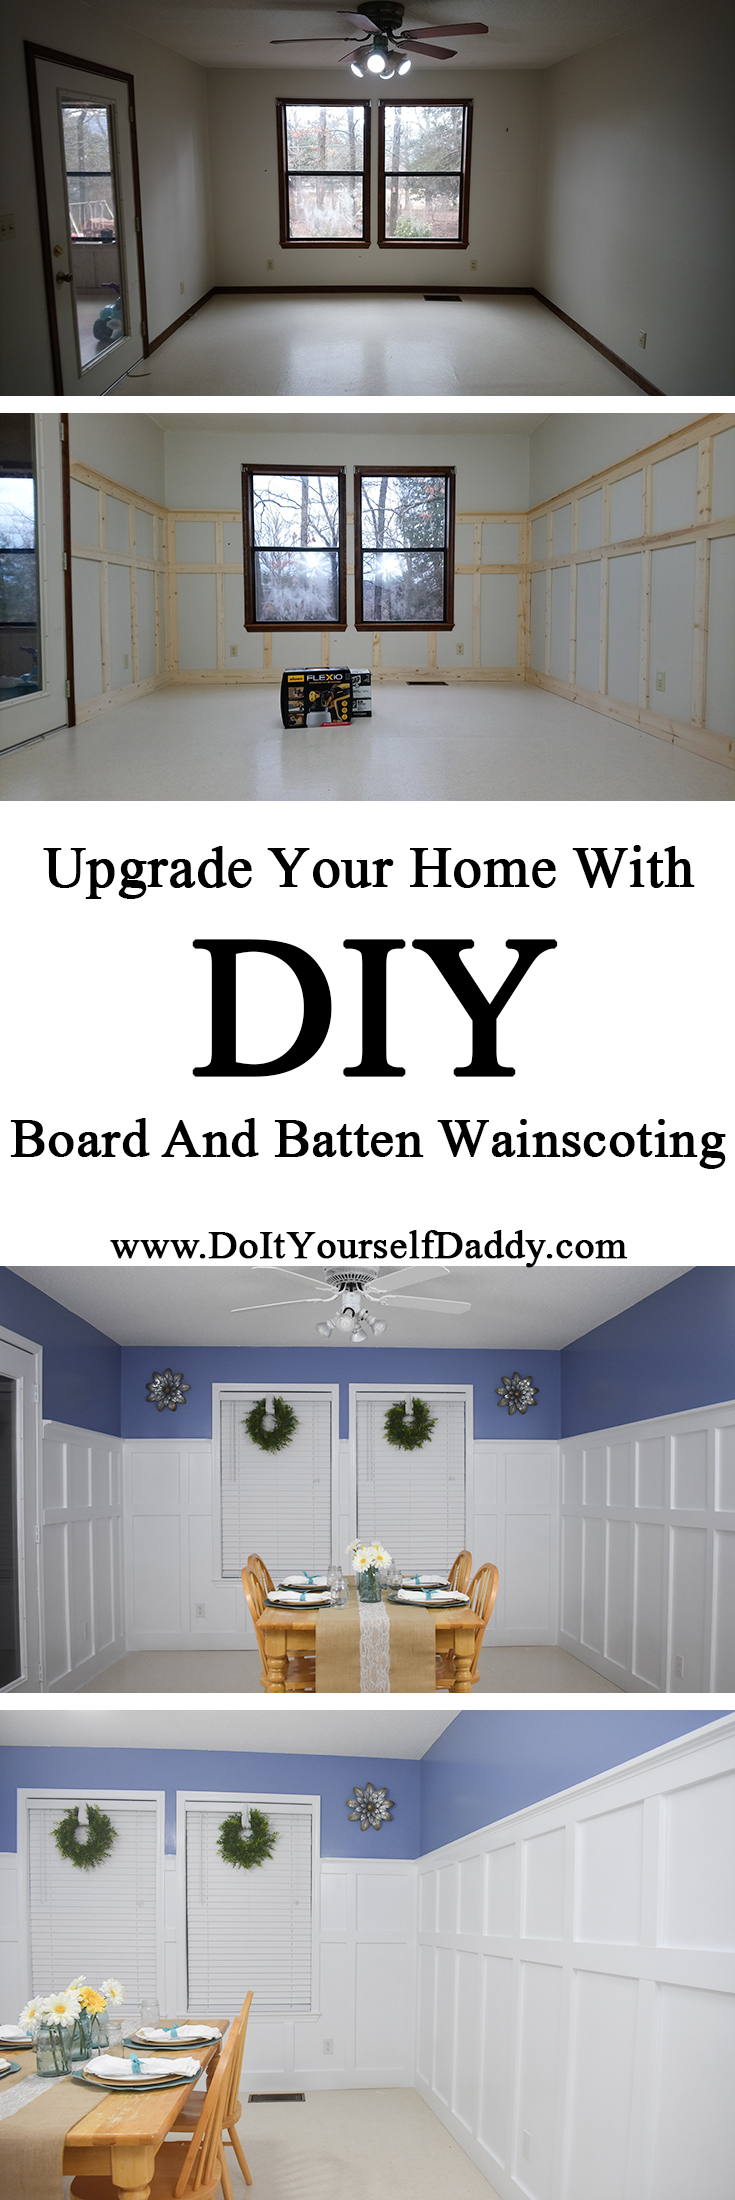 Board and Batten Wainscoting Pinterest